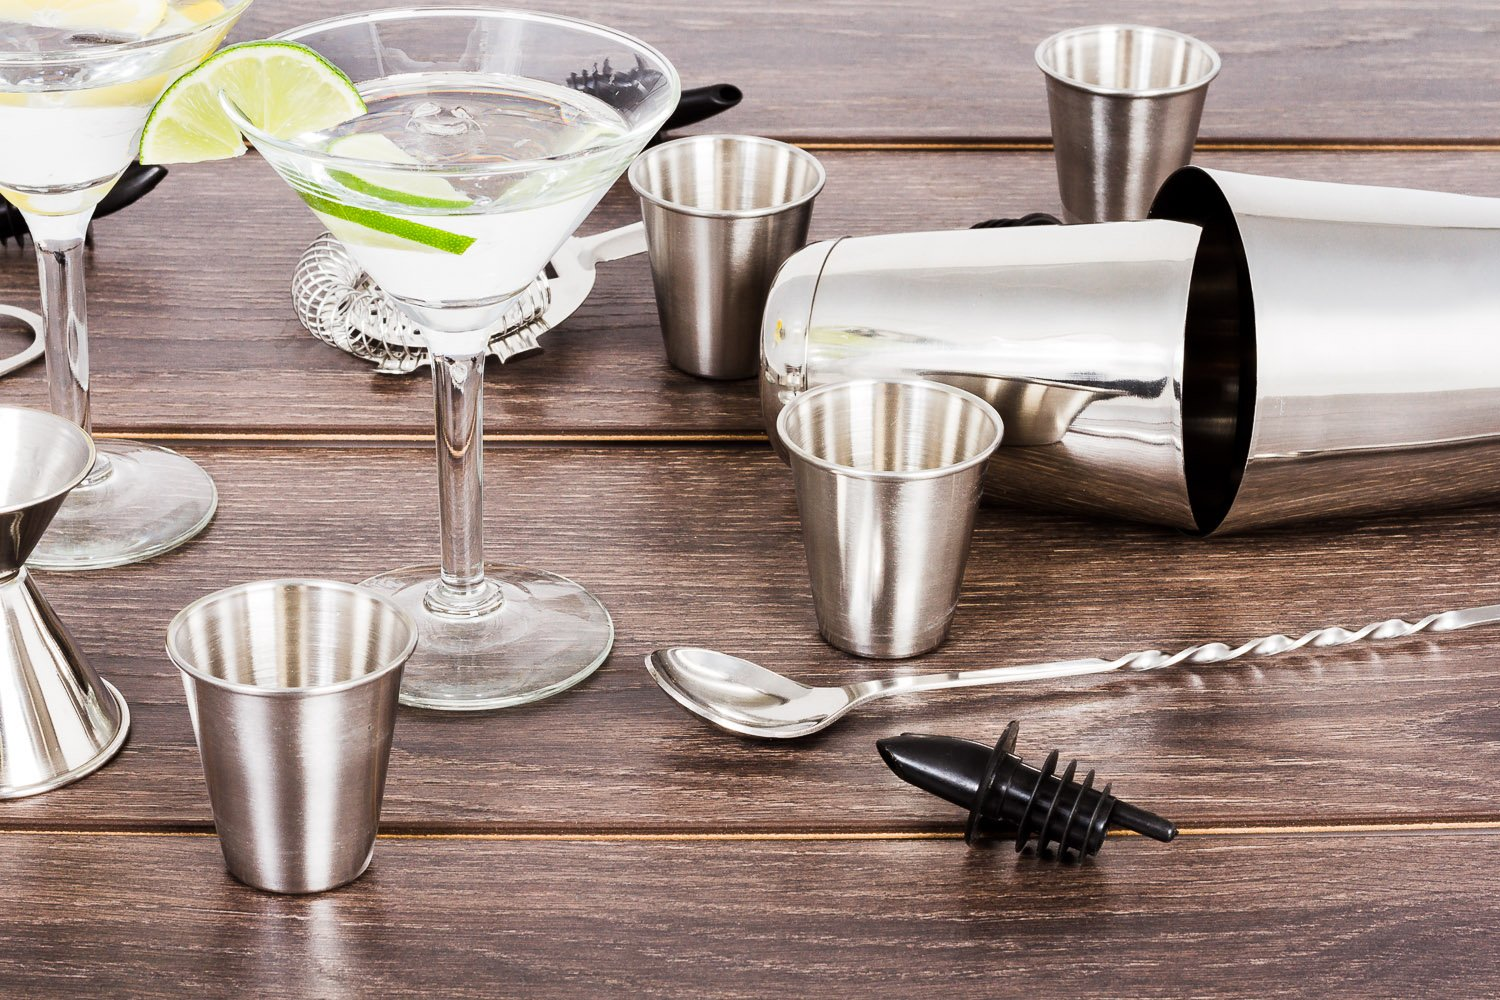 16 Pcs Cocktail Shaker Home Bar Set – Complete Bartender Kit with Double Bar Jigger, Pour Spouts, Drink Shaker, Hawthorne Strainer, Bar Spoon, Bottle Opener and Tin Shot Glasses by Lexi Home (Image #8)